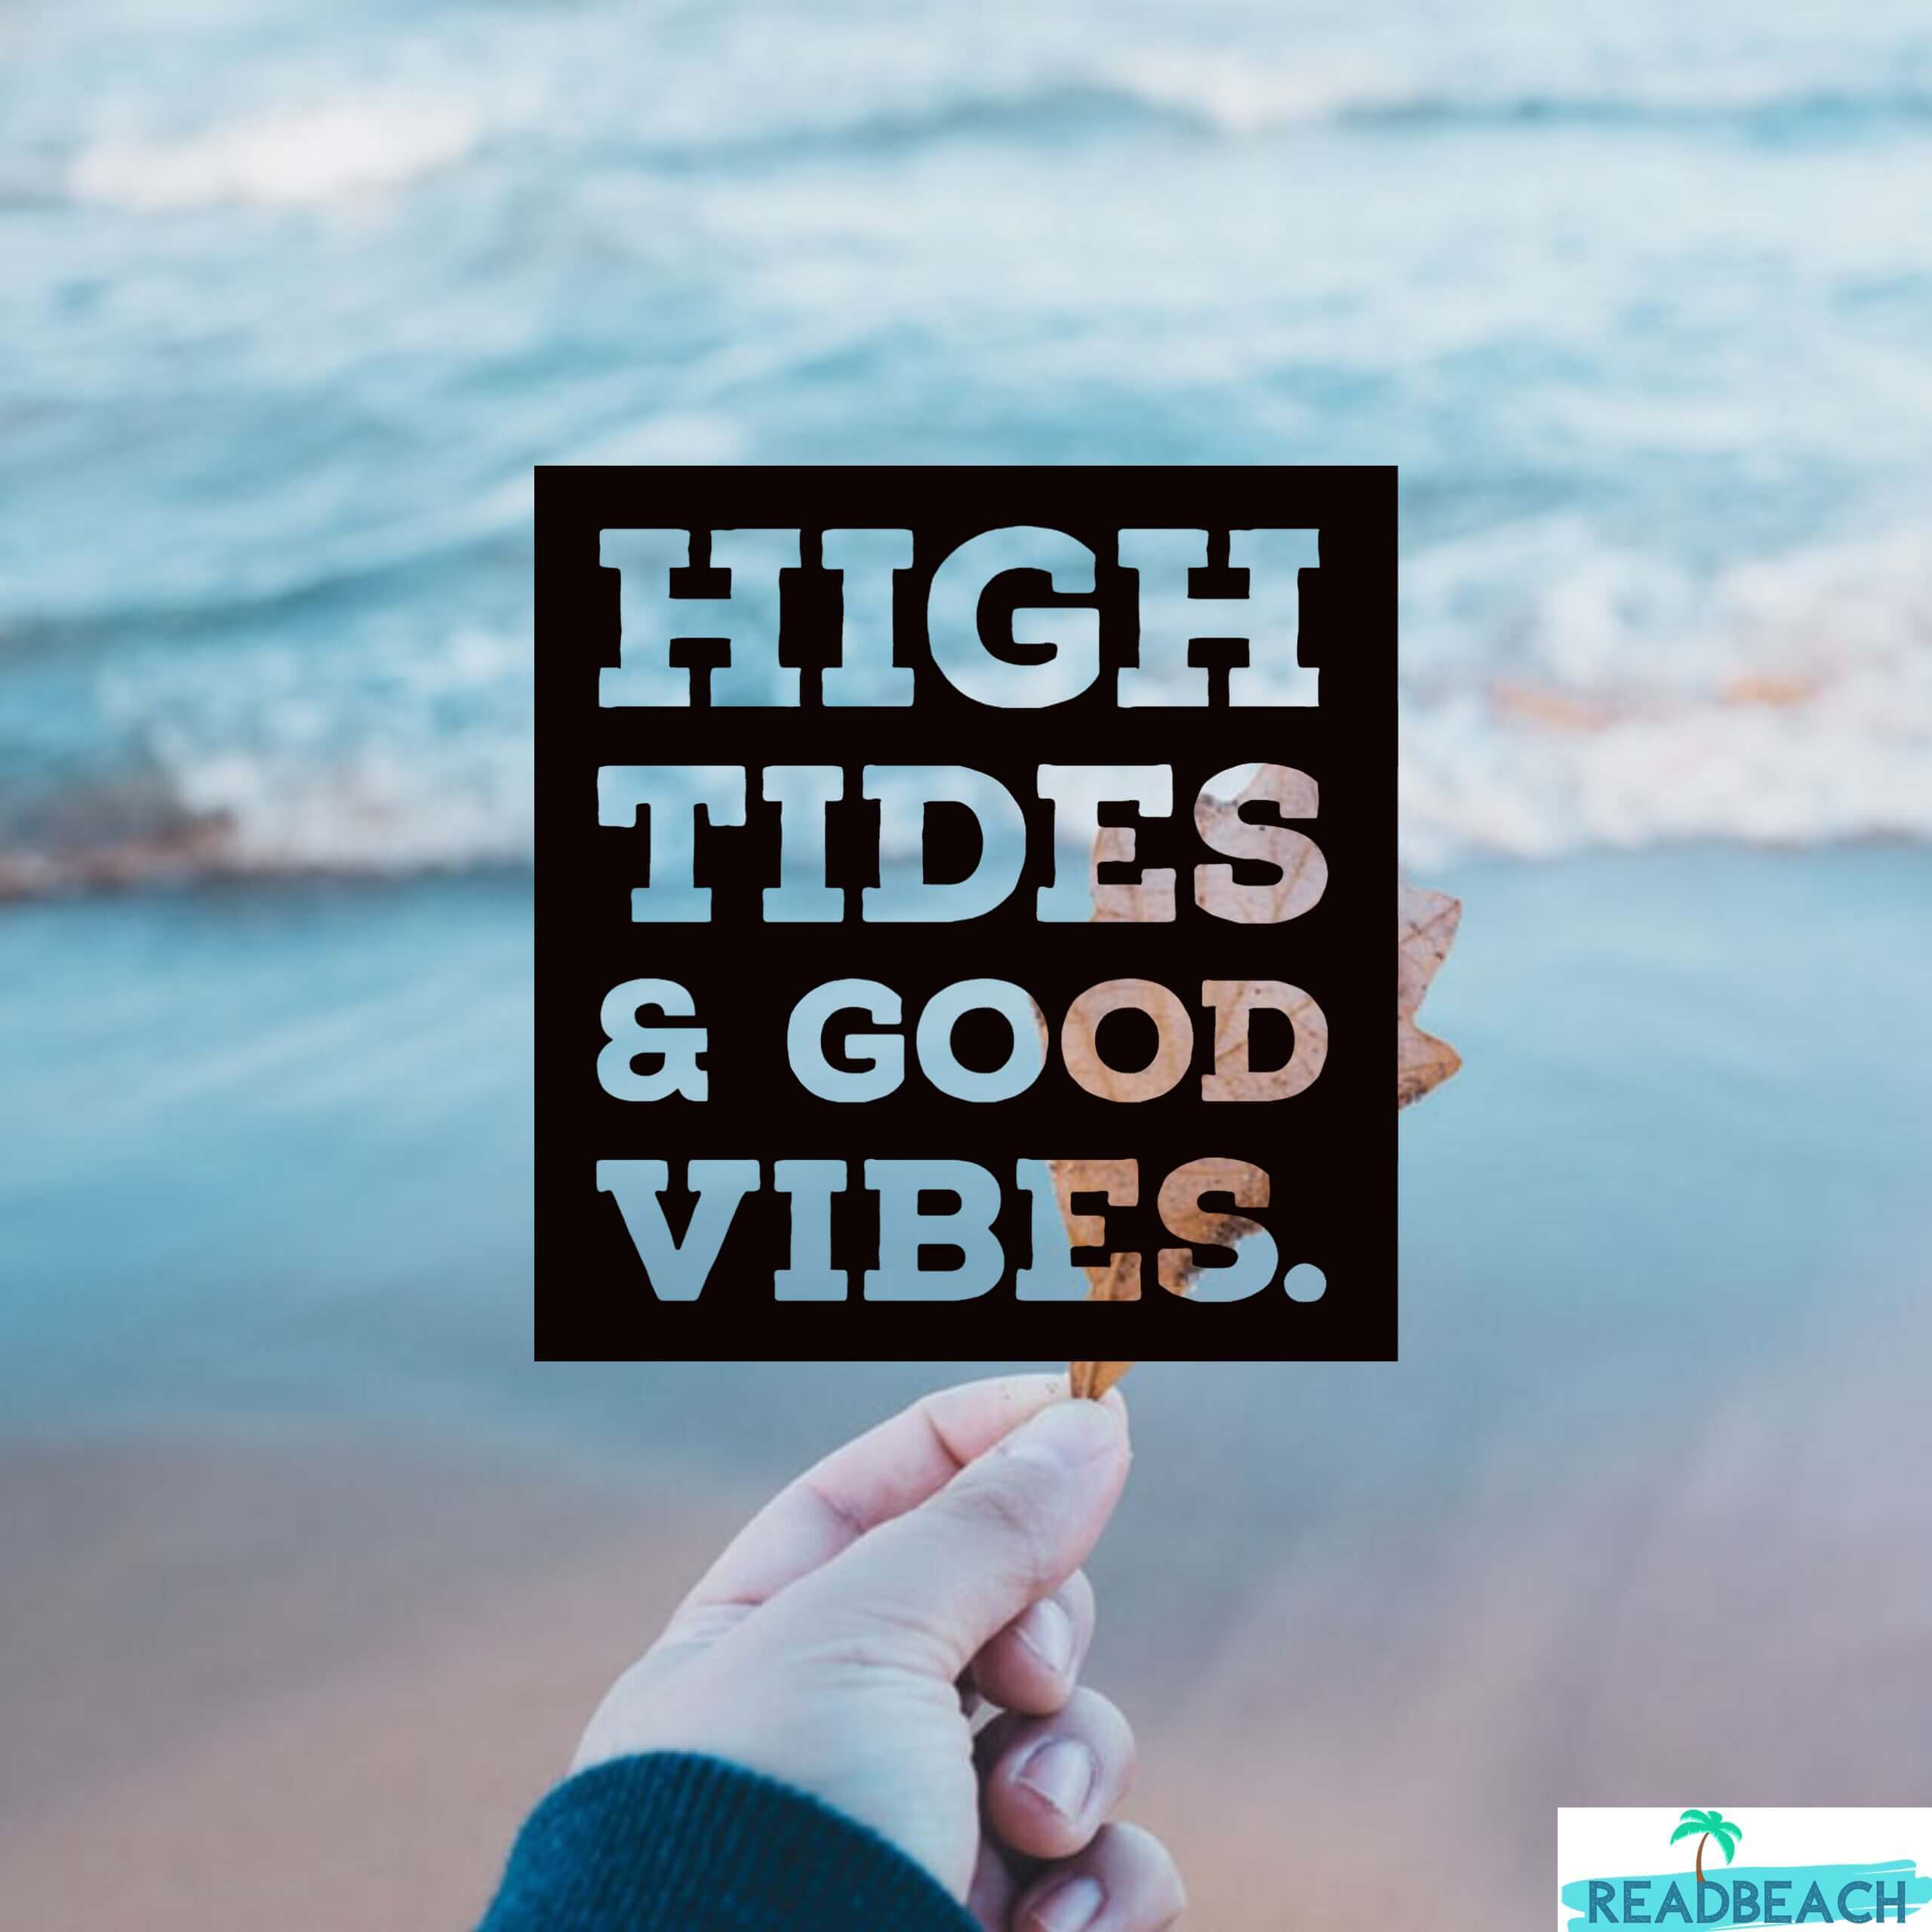 2 Good Vibes Quotes - High tides & Good vibes.